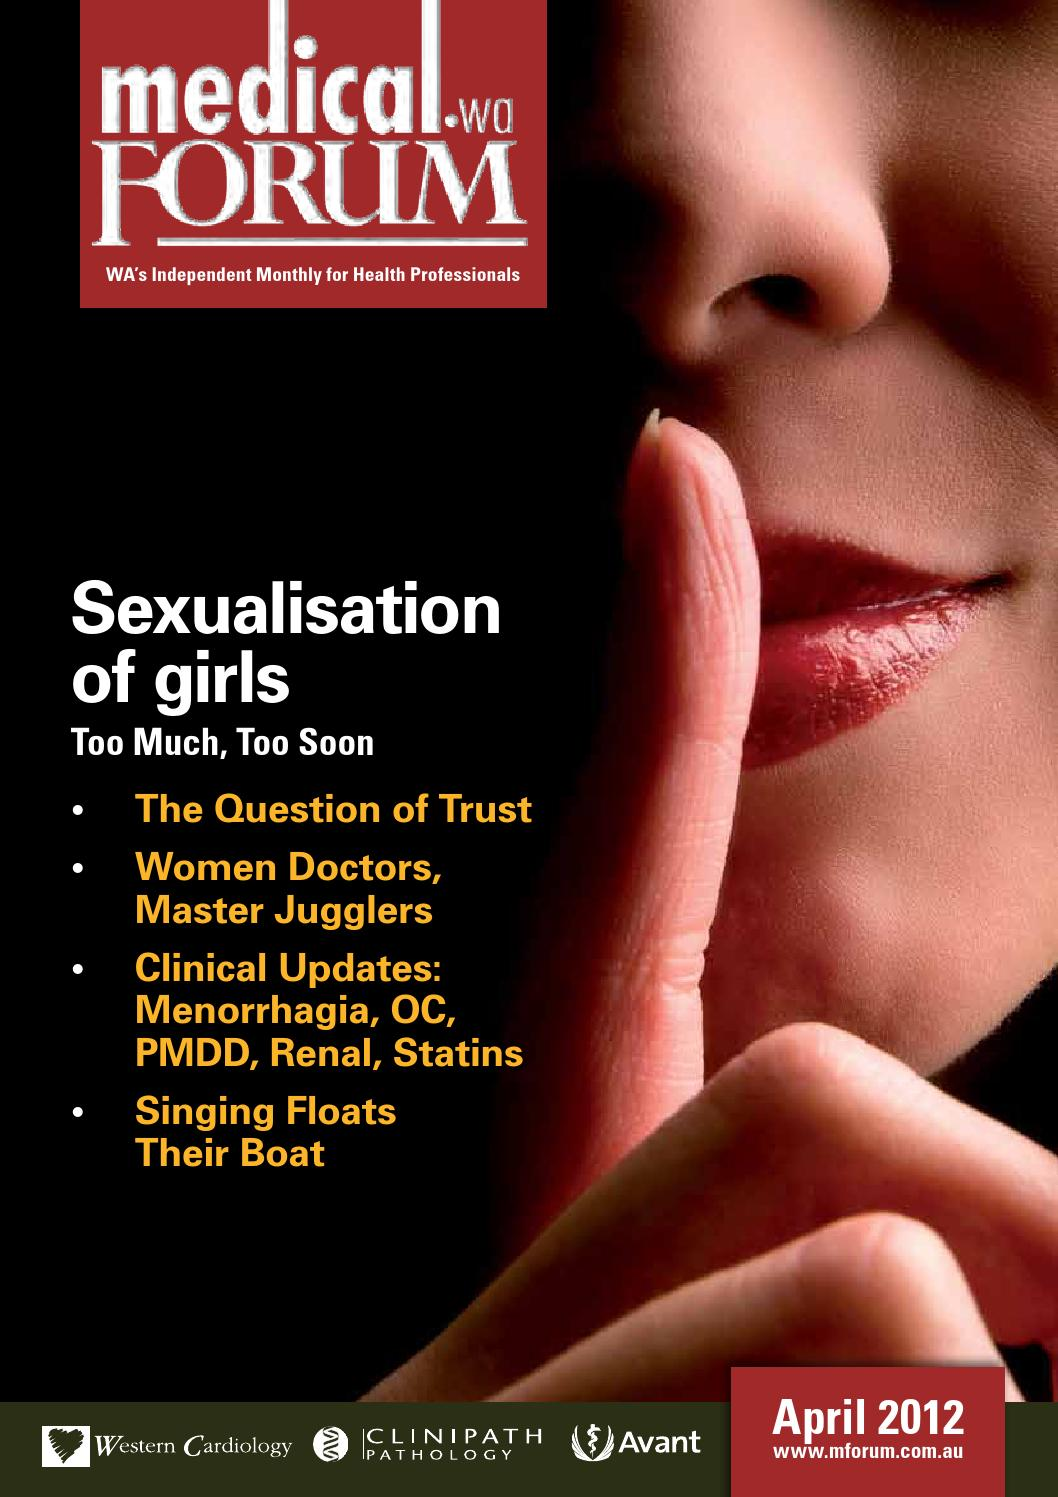 Medical Forum 04/12 Public Edition by Medical Forum WA - issuu